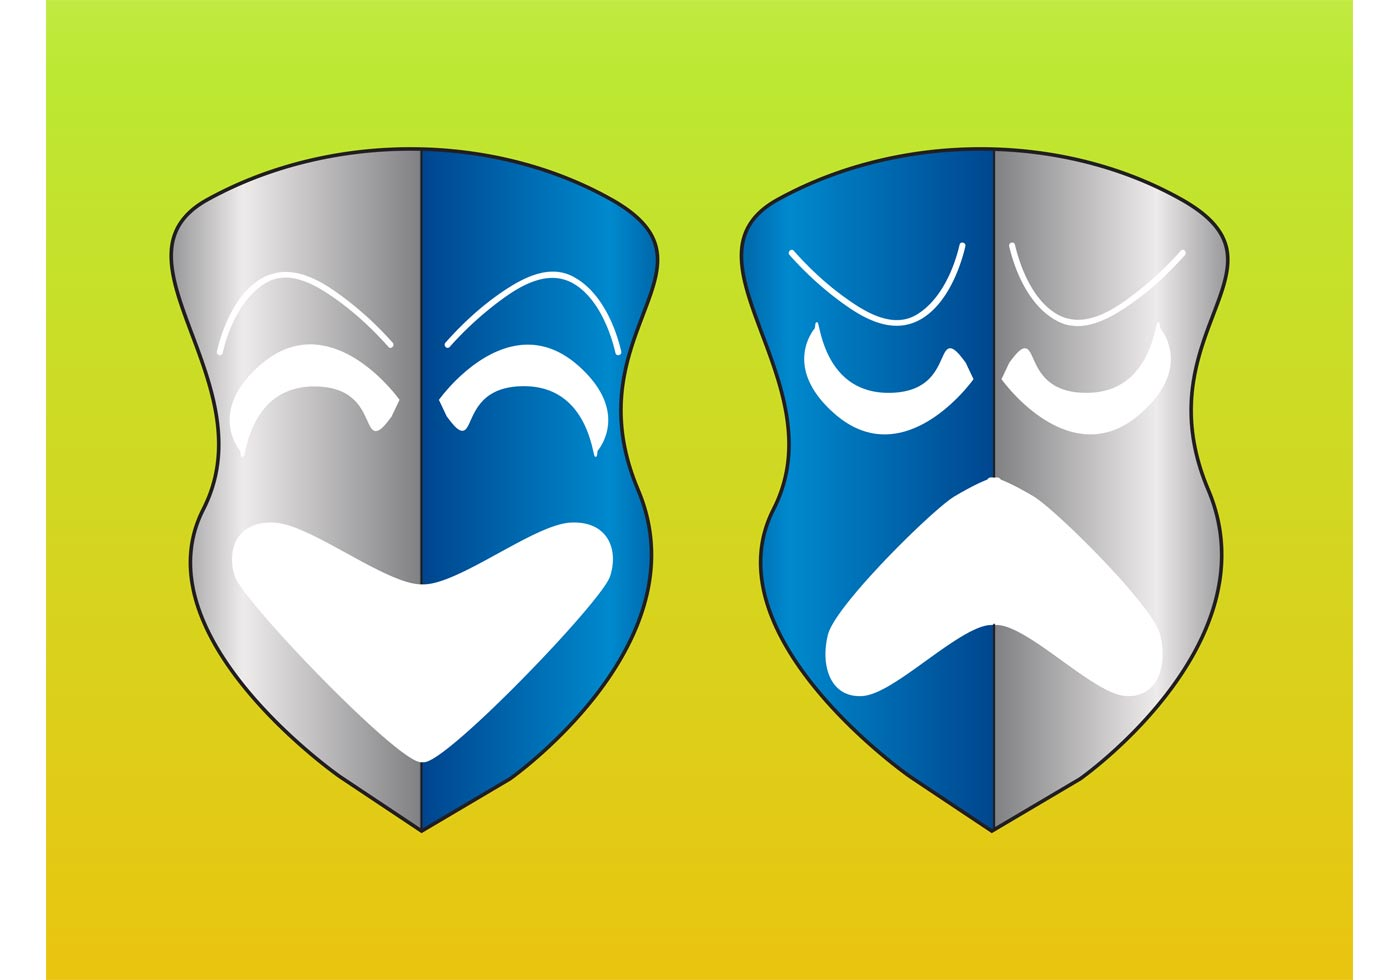 Comedy And Tragedy Masks - Download Free Vector Art, Stock Graphics ...